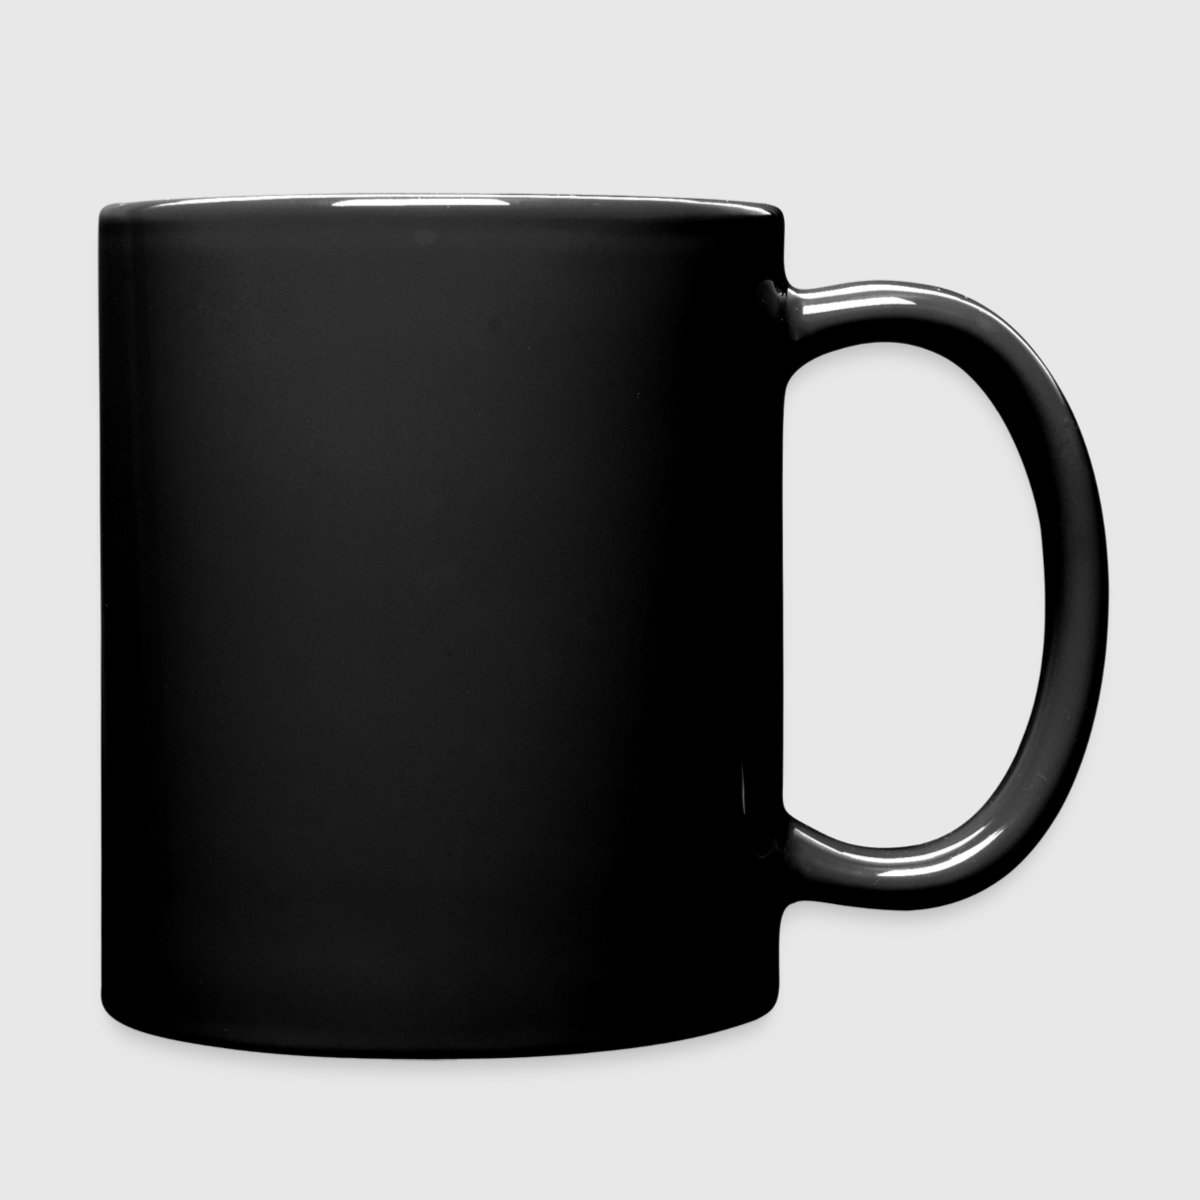 Full Color Mug - Right